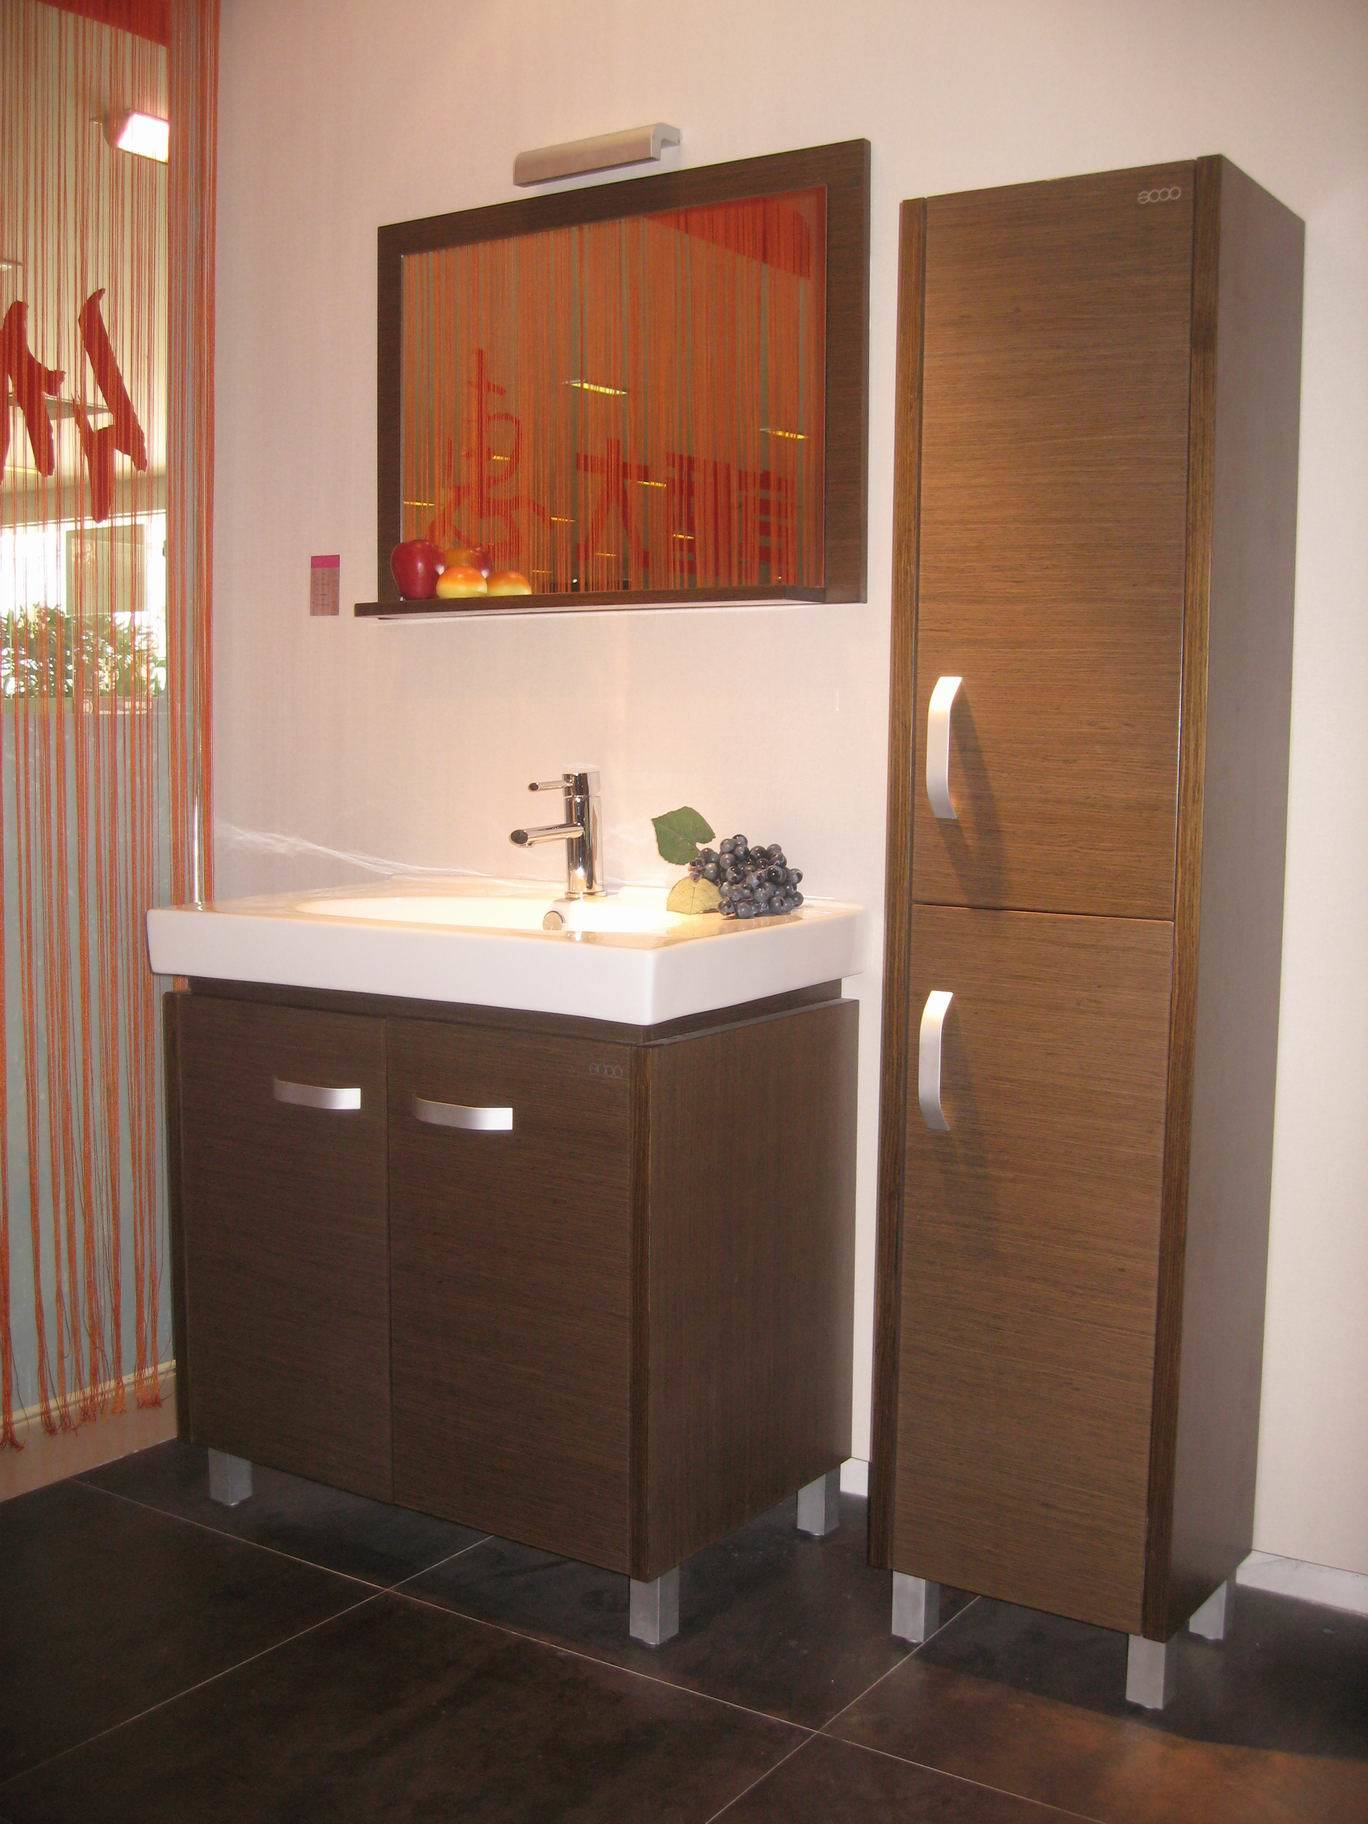 Skane Sessan Freestanding Bathroom Furniture